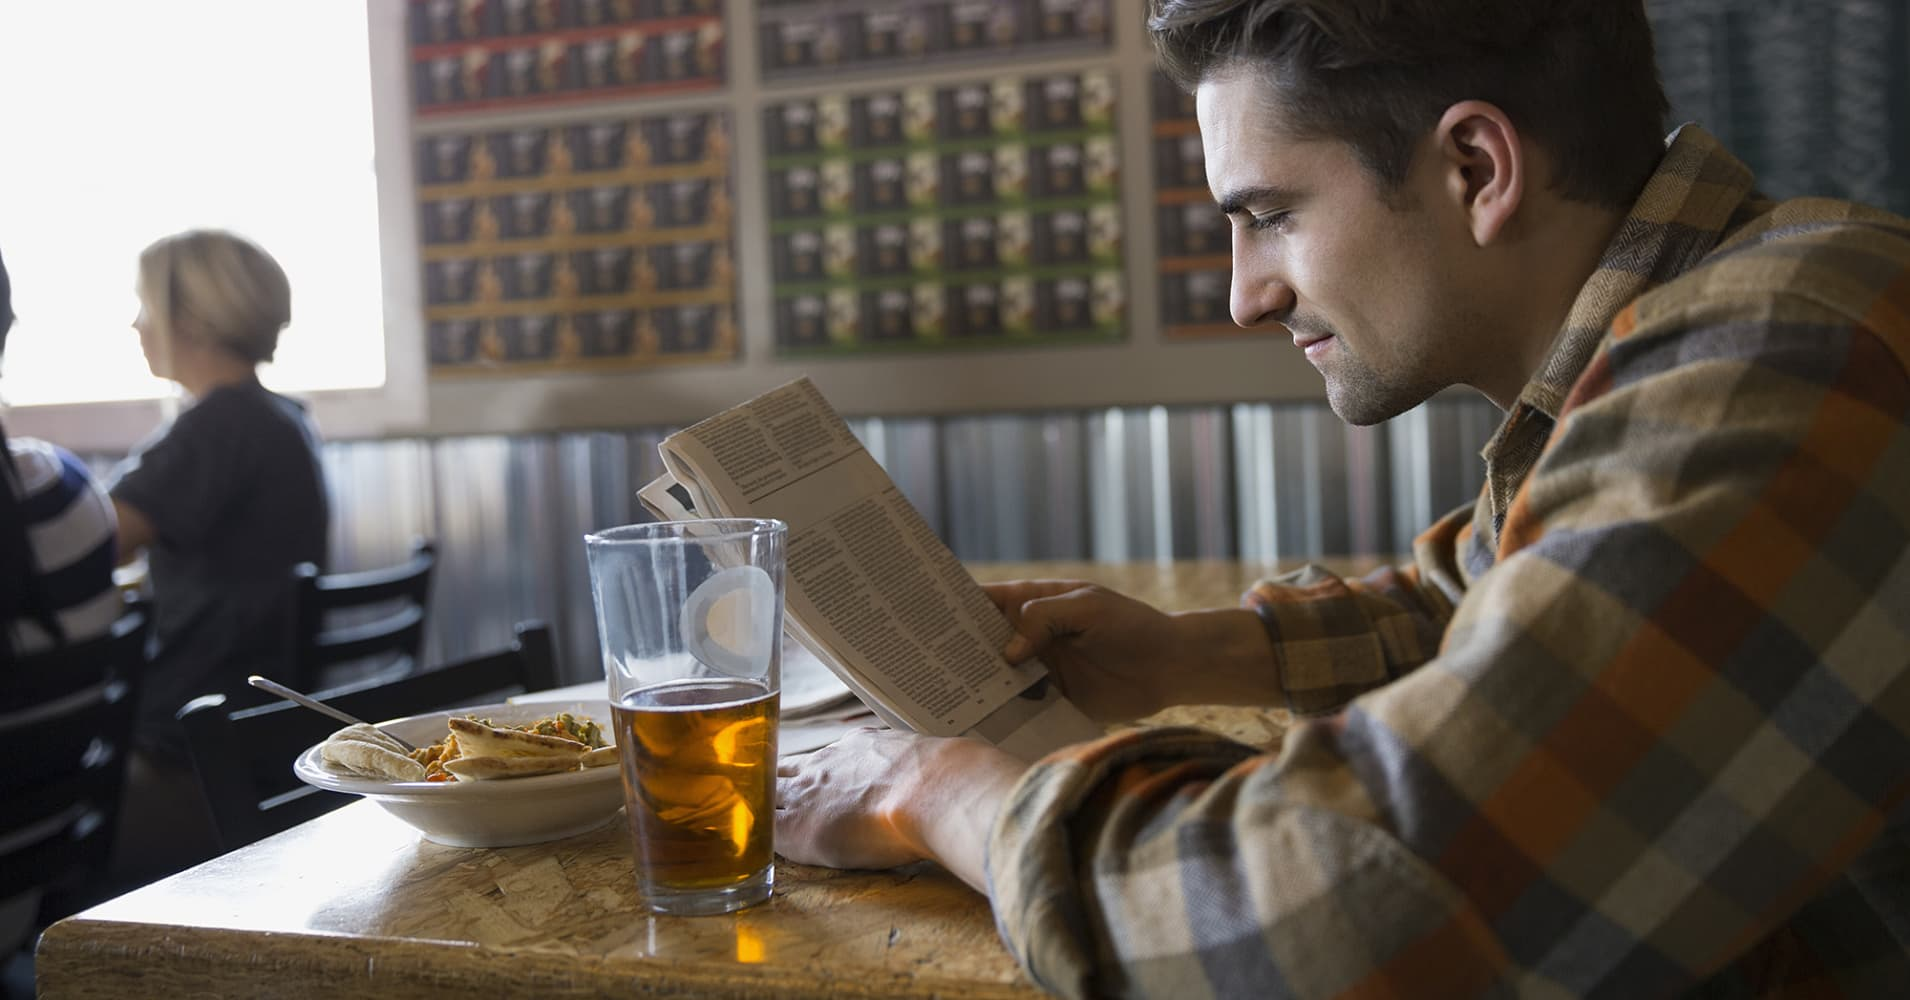 eating alone in restaurants essay If you compare eating in to eating out in terms of convenience alone, restaurant food wins the contest  a single meal at fast food restaurants can supersize you .